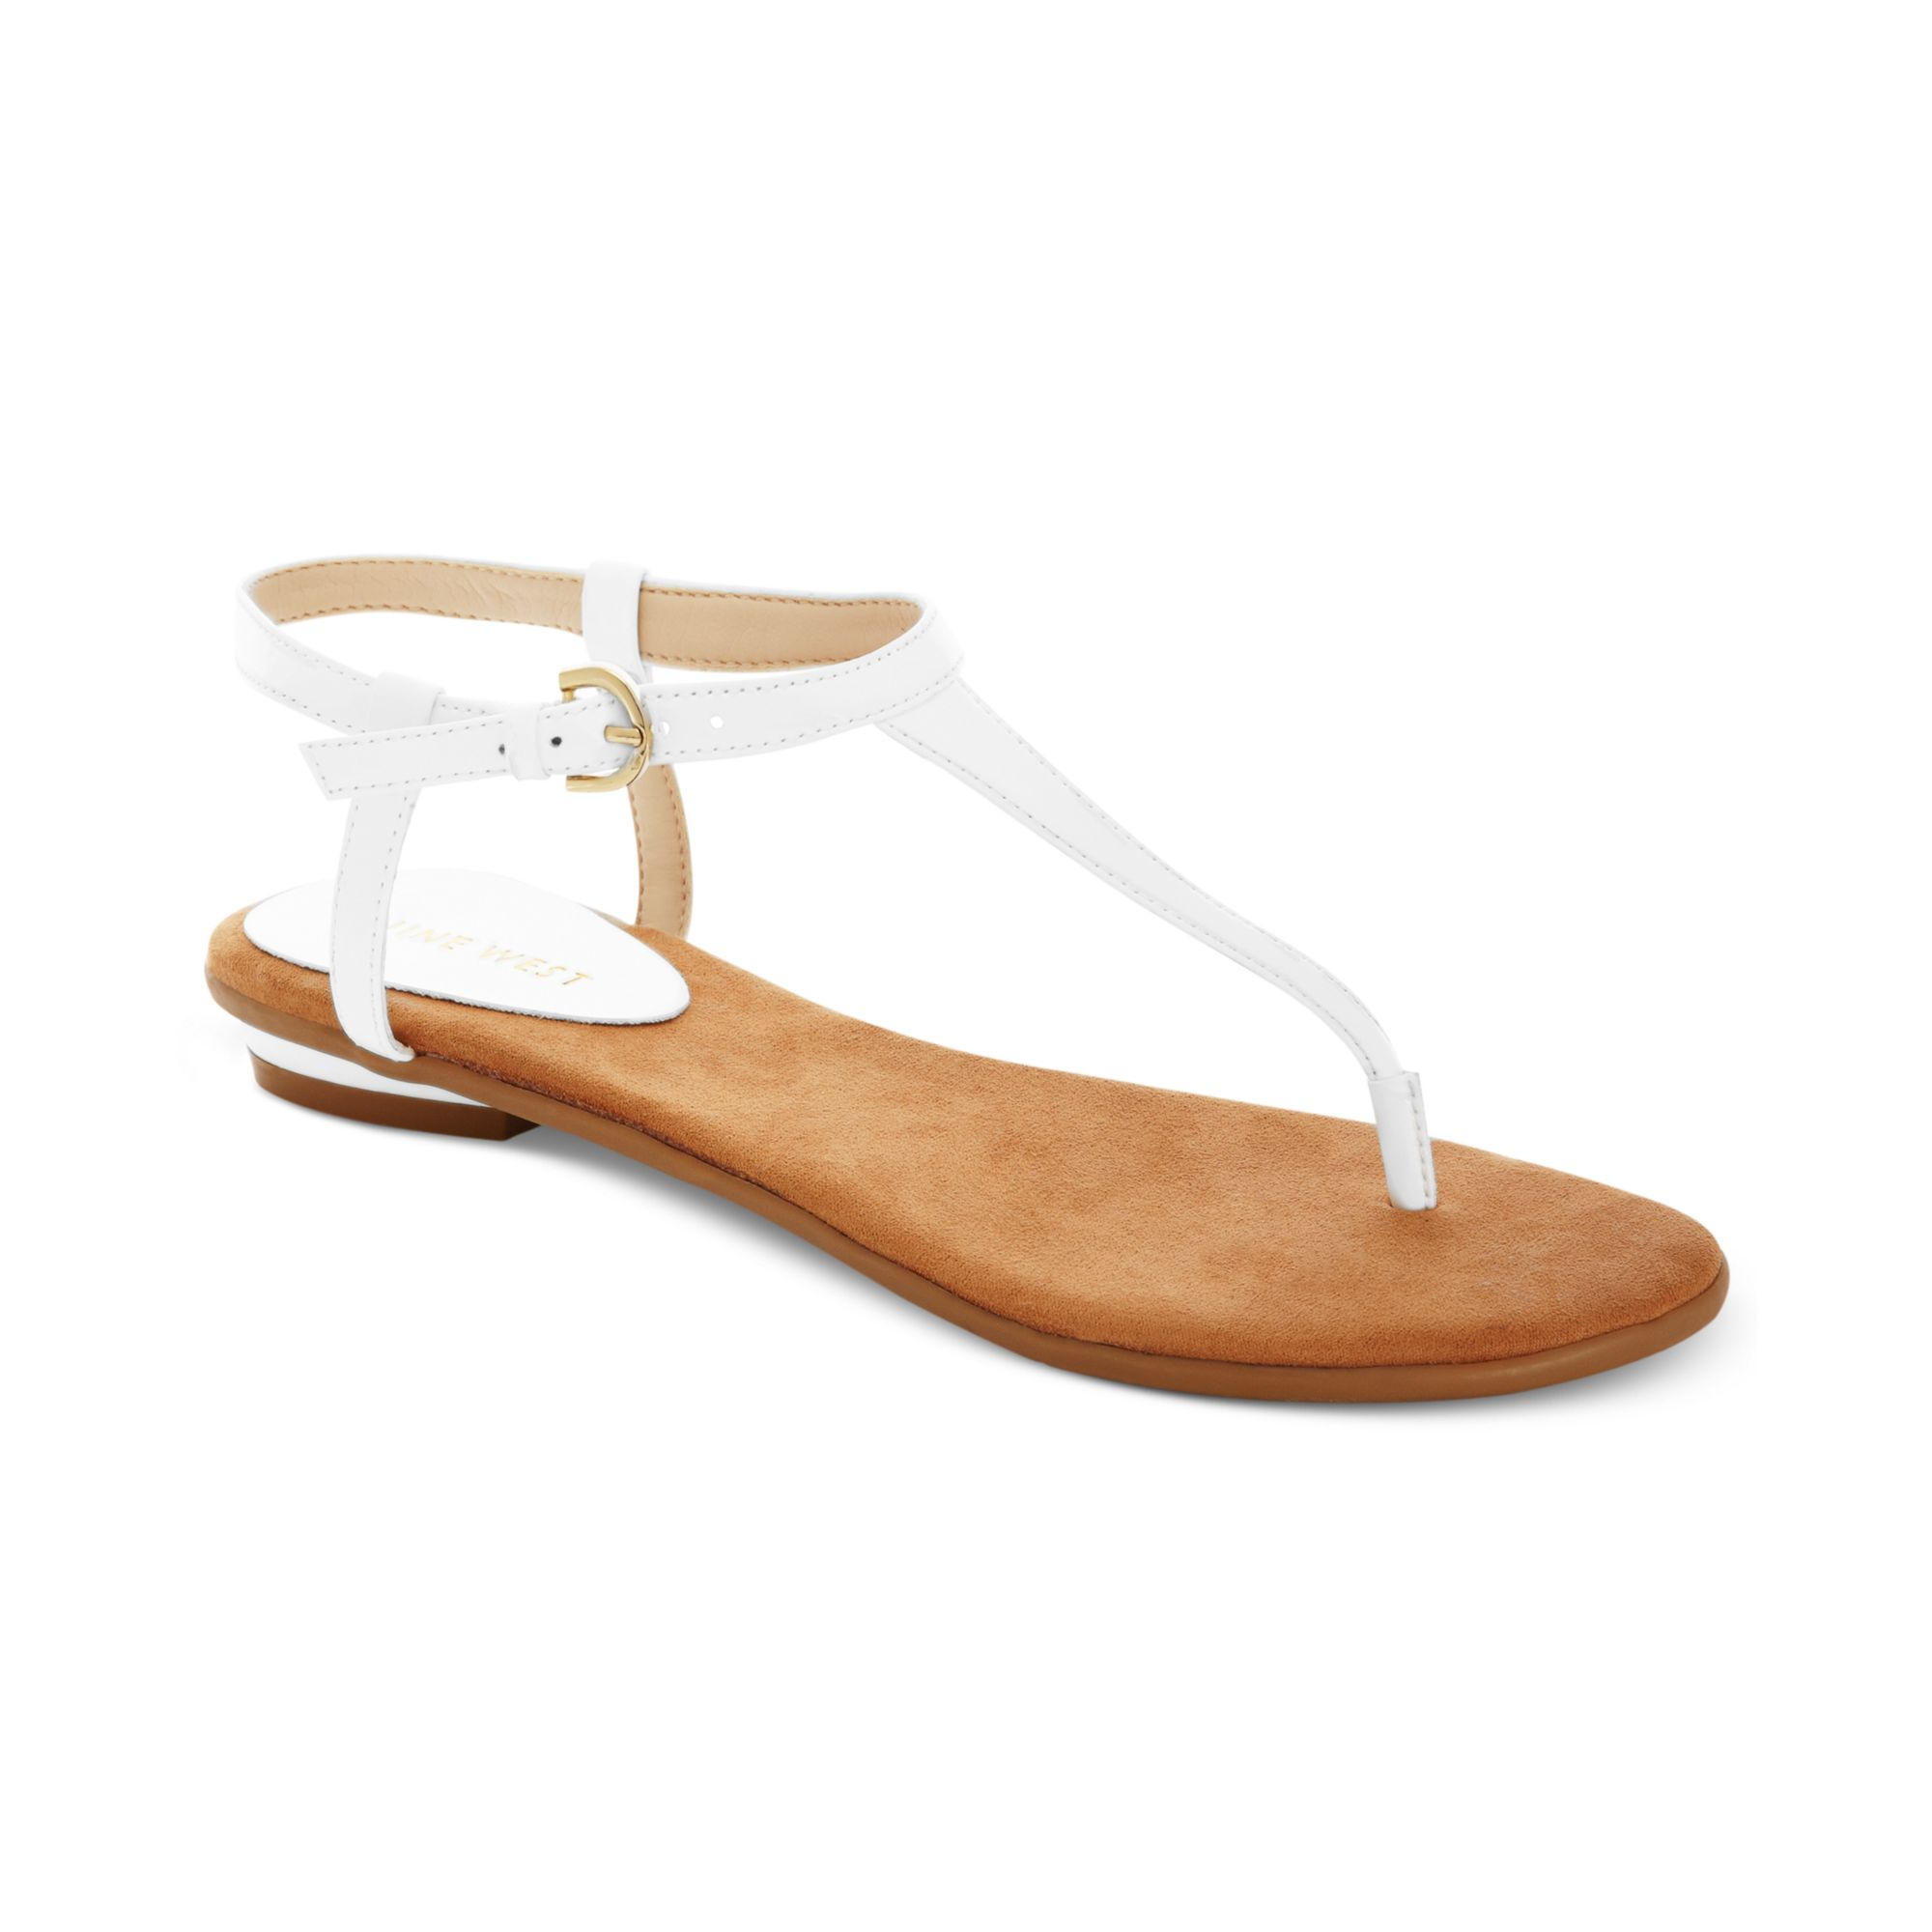 9ad6ec186 Lyst - Nine West Izzelly Flat Thong Sandals in White